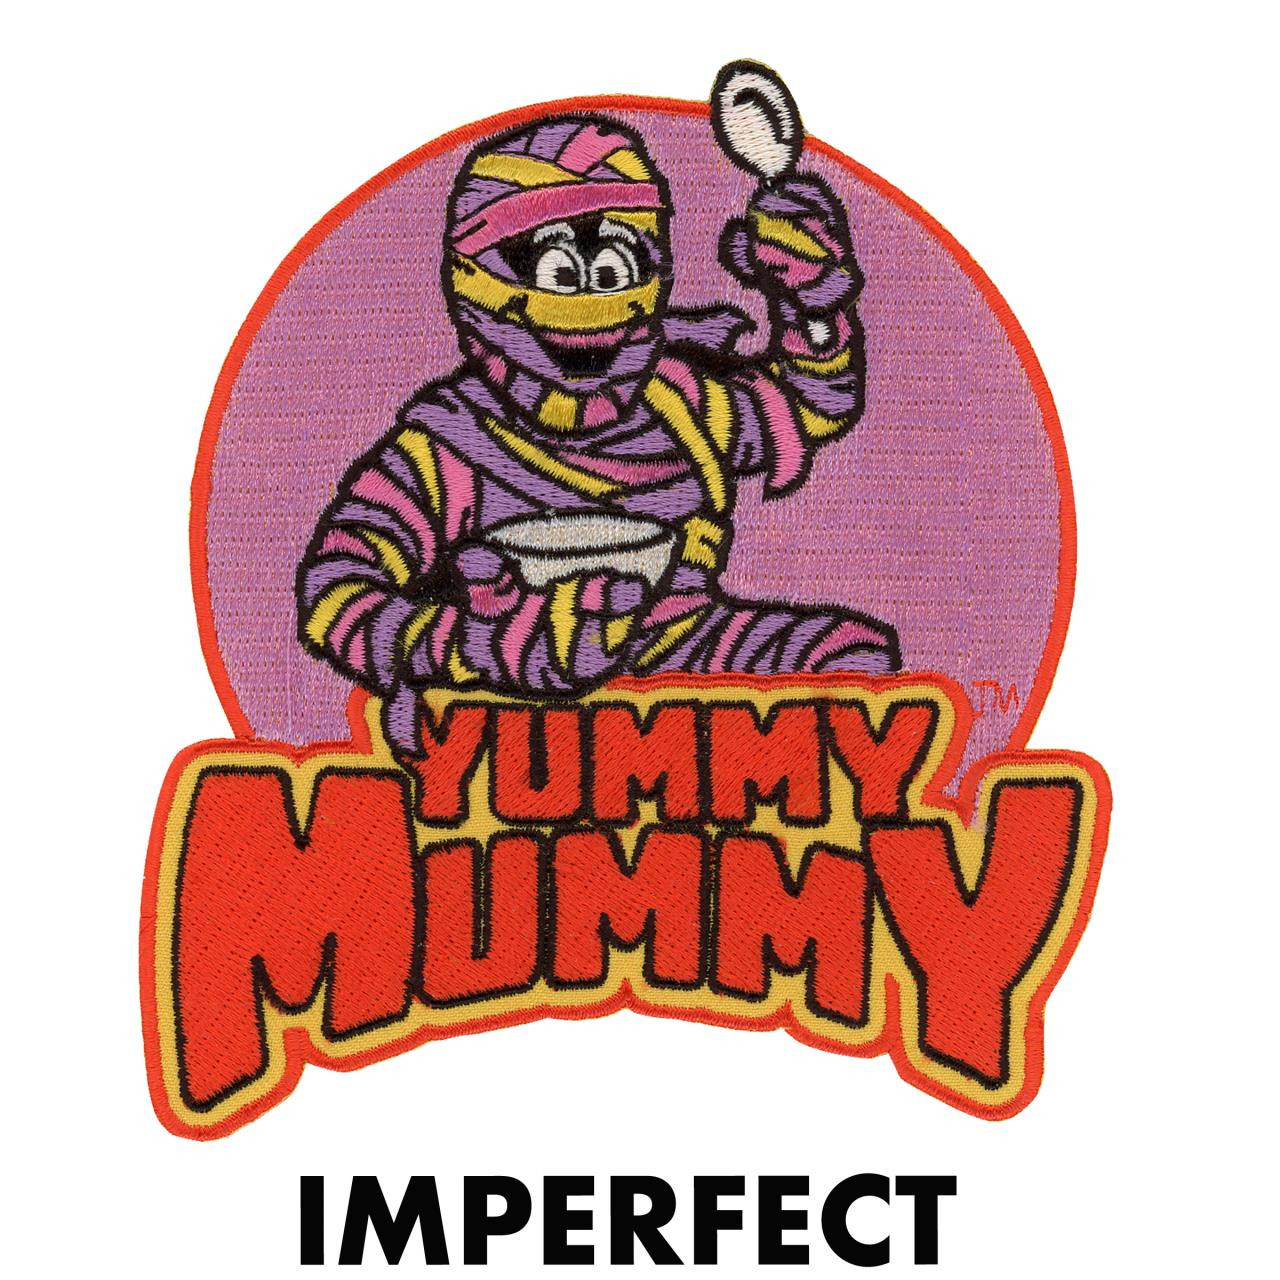 Imperfect General Mills Yummy Mummy Patch* -